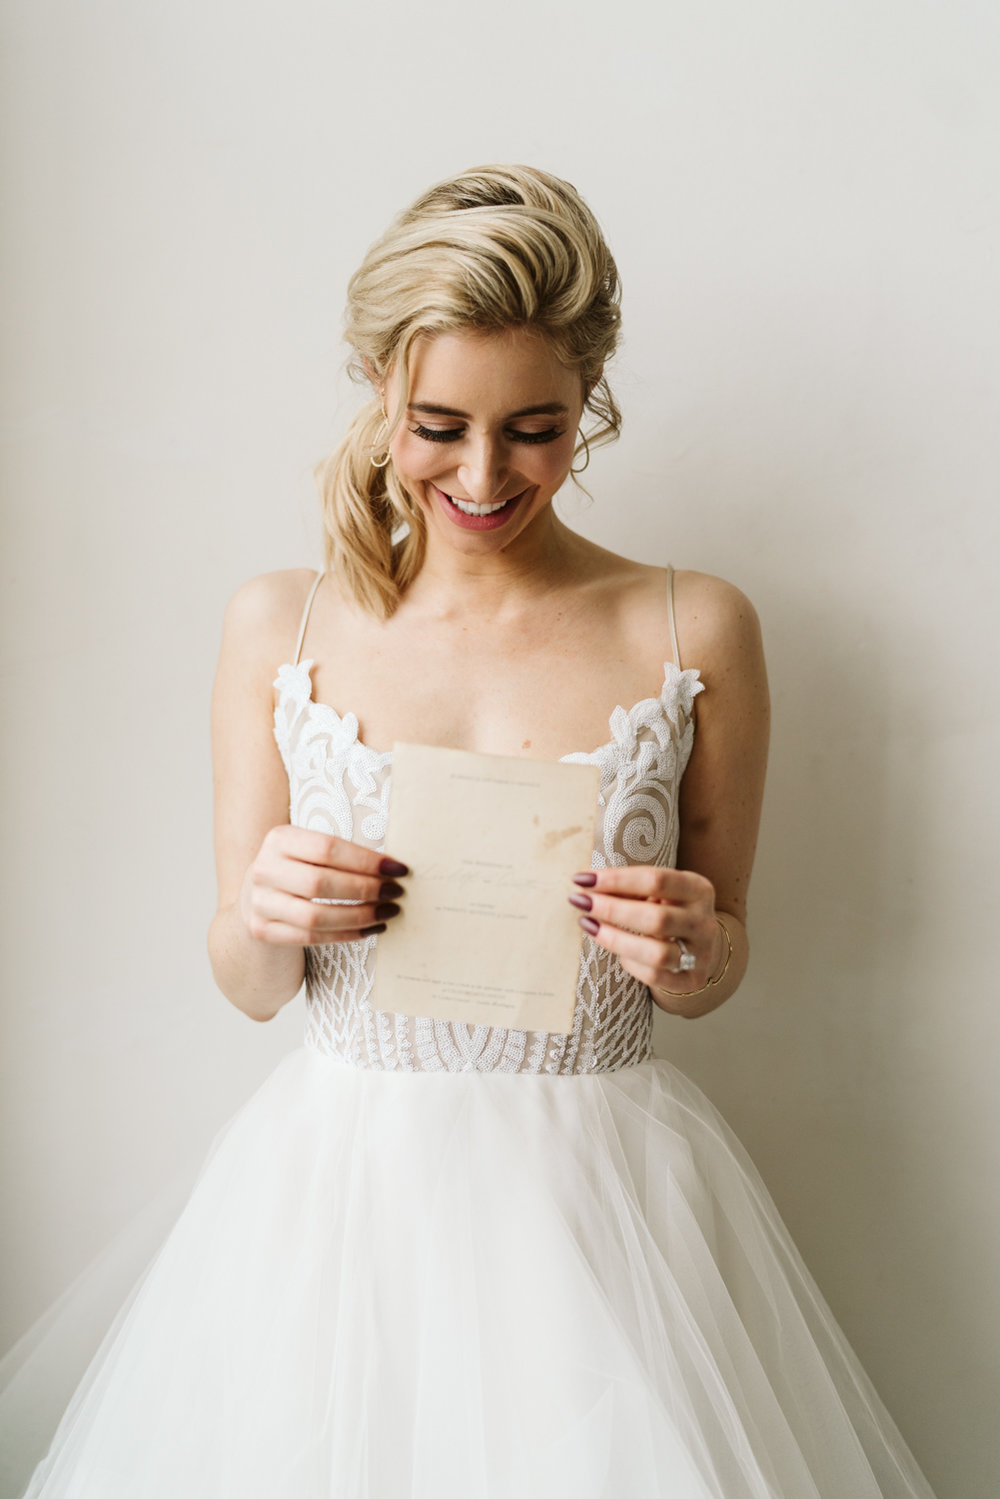 April Yentas Photography - January Styled Shoot-462.jpg